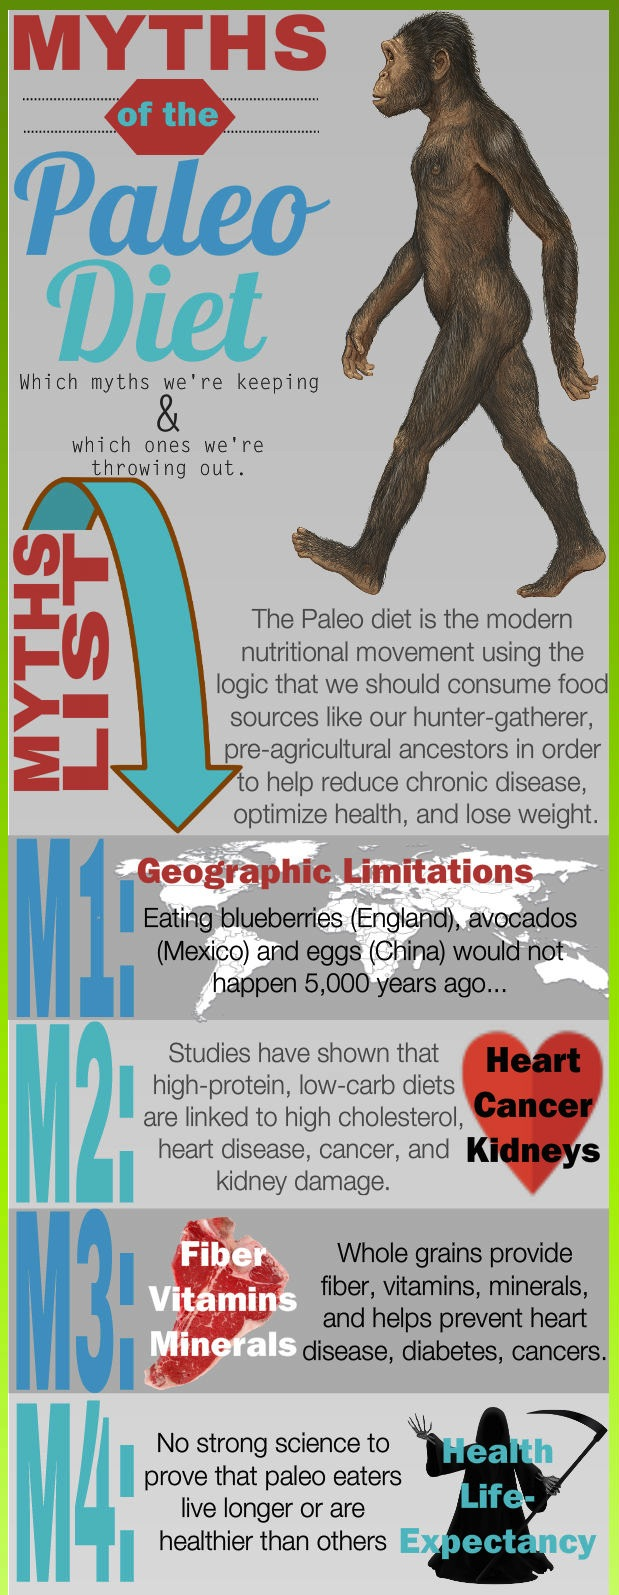 Paleo Diet myths